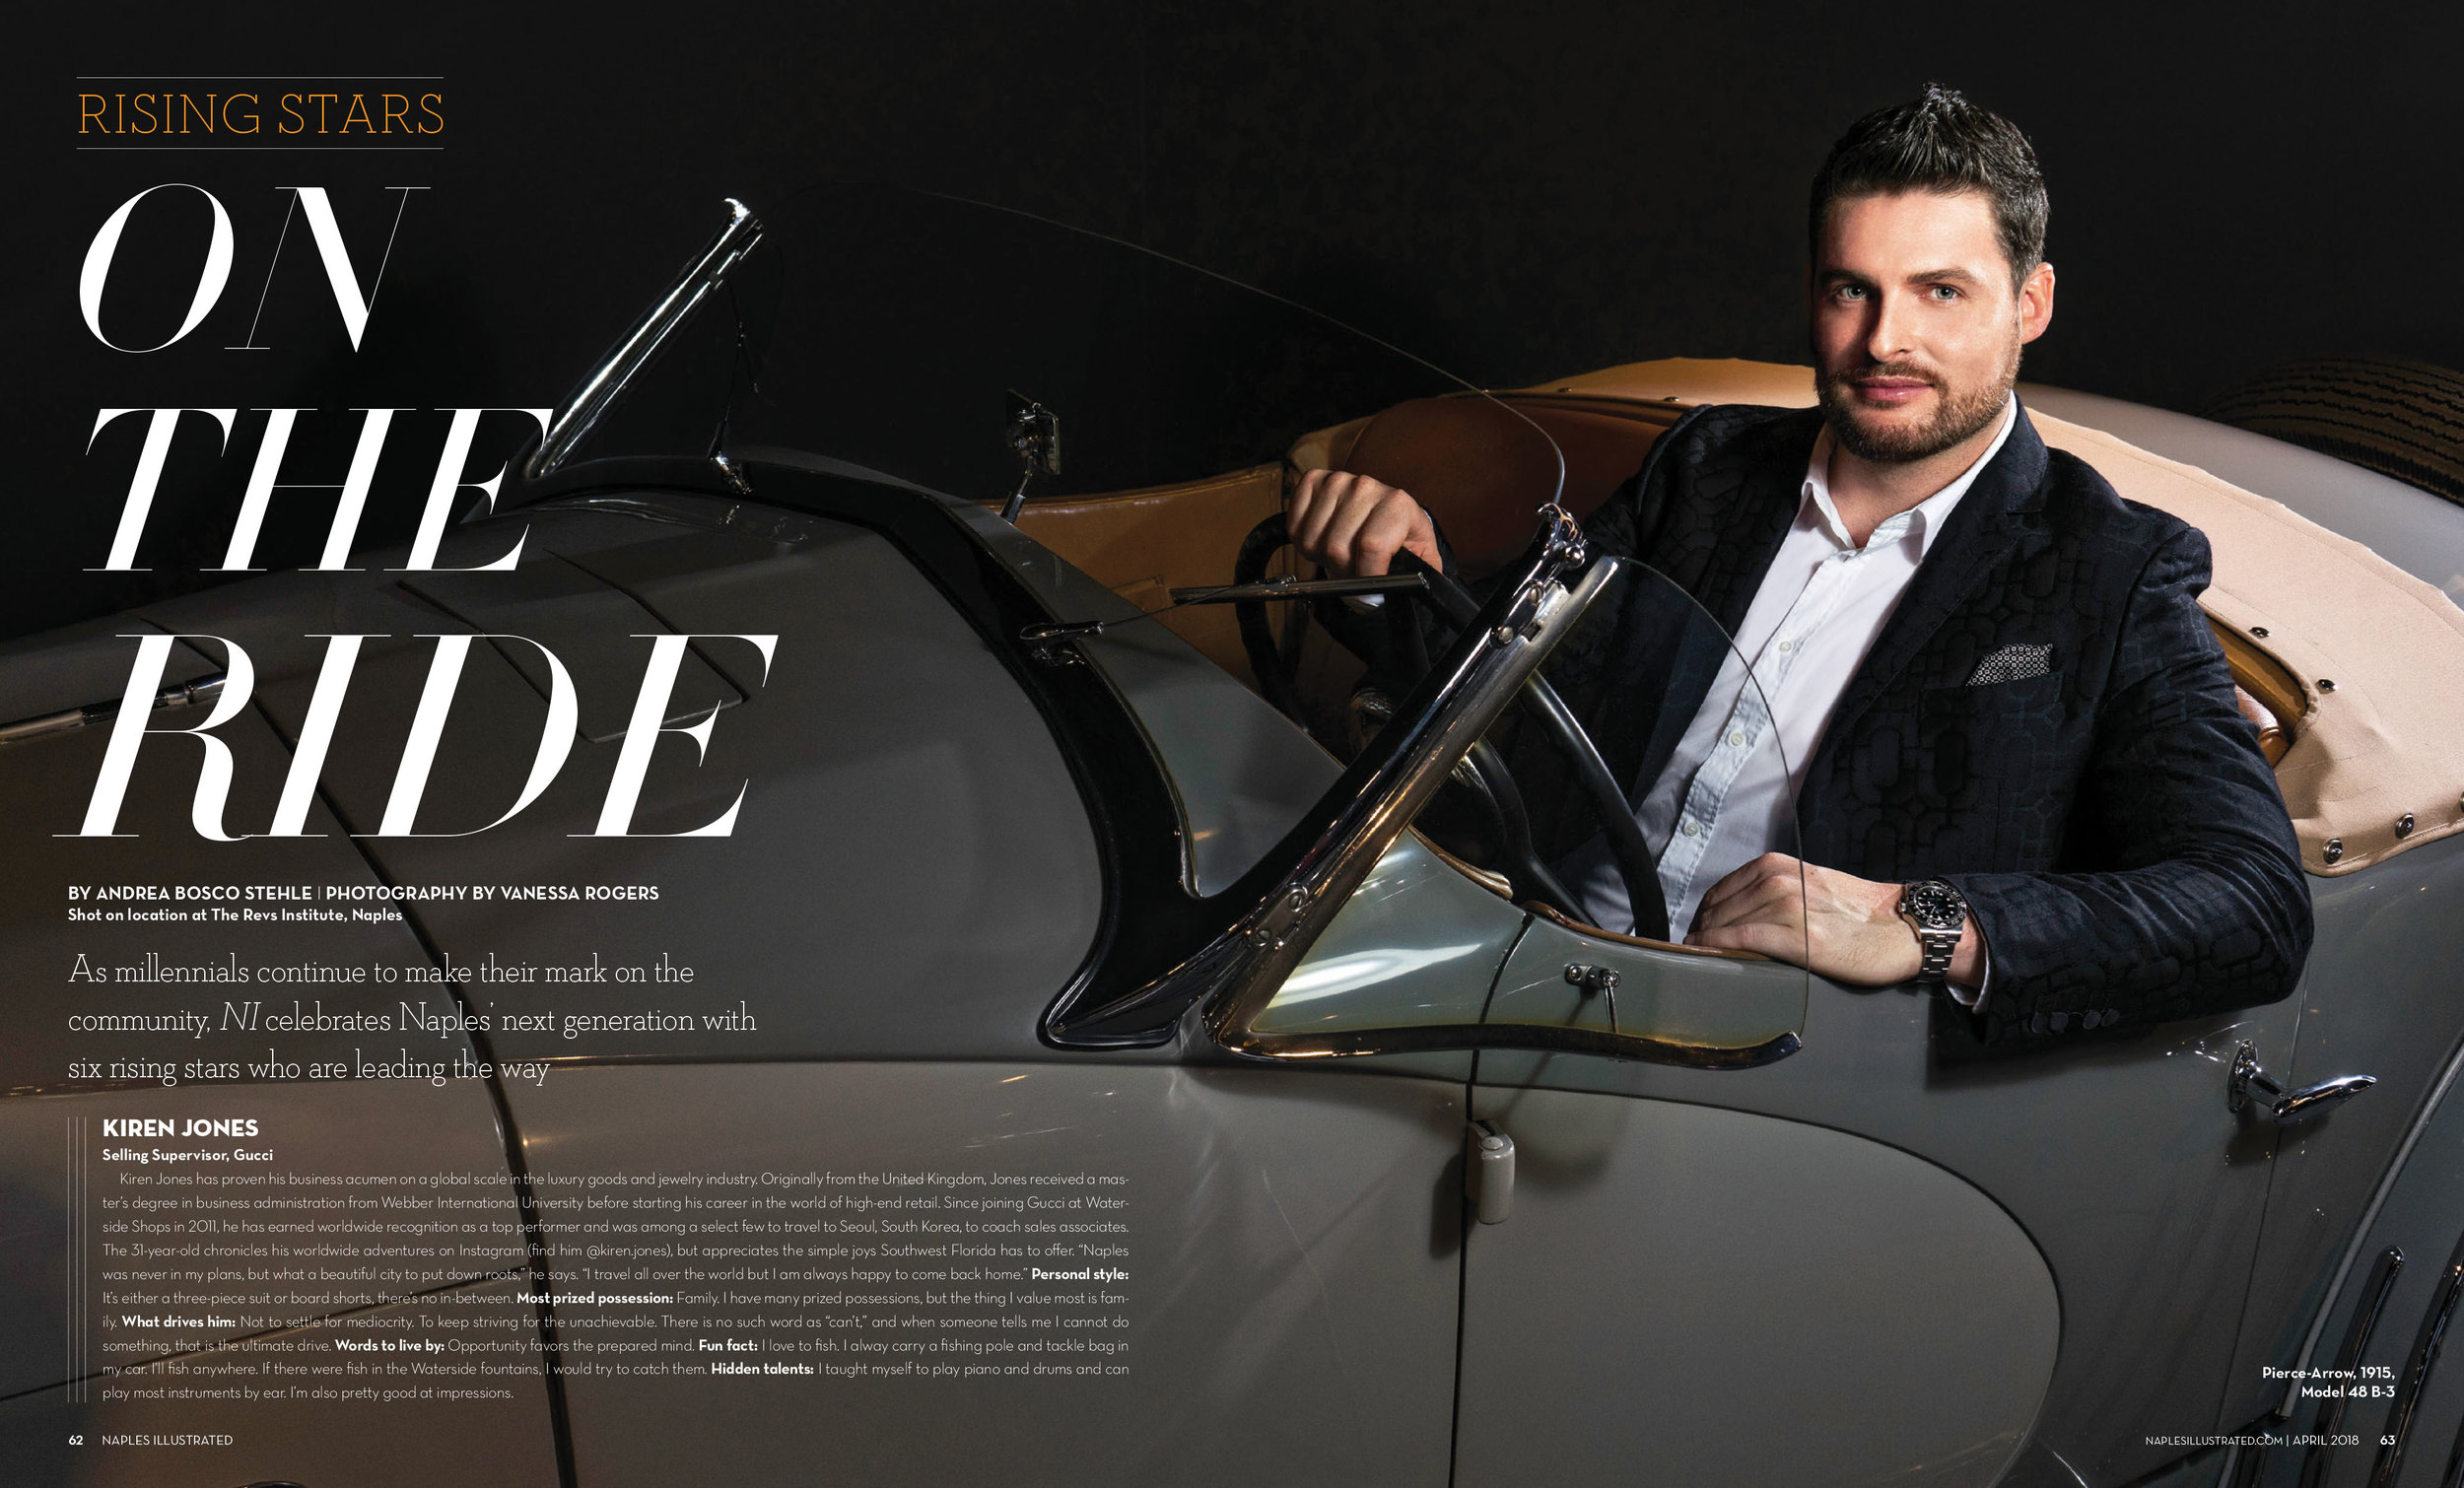 Kiren Jones from Gucci in a Pierce-Arrow 1915 Model 48 B-3 shot at The Rev's Institute in Naples, Florida March 2018 Issue of Naples Illustrated Magazine